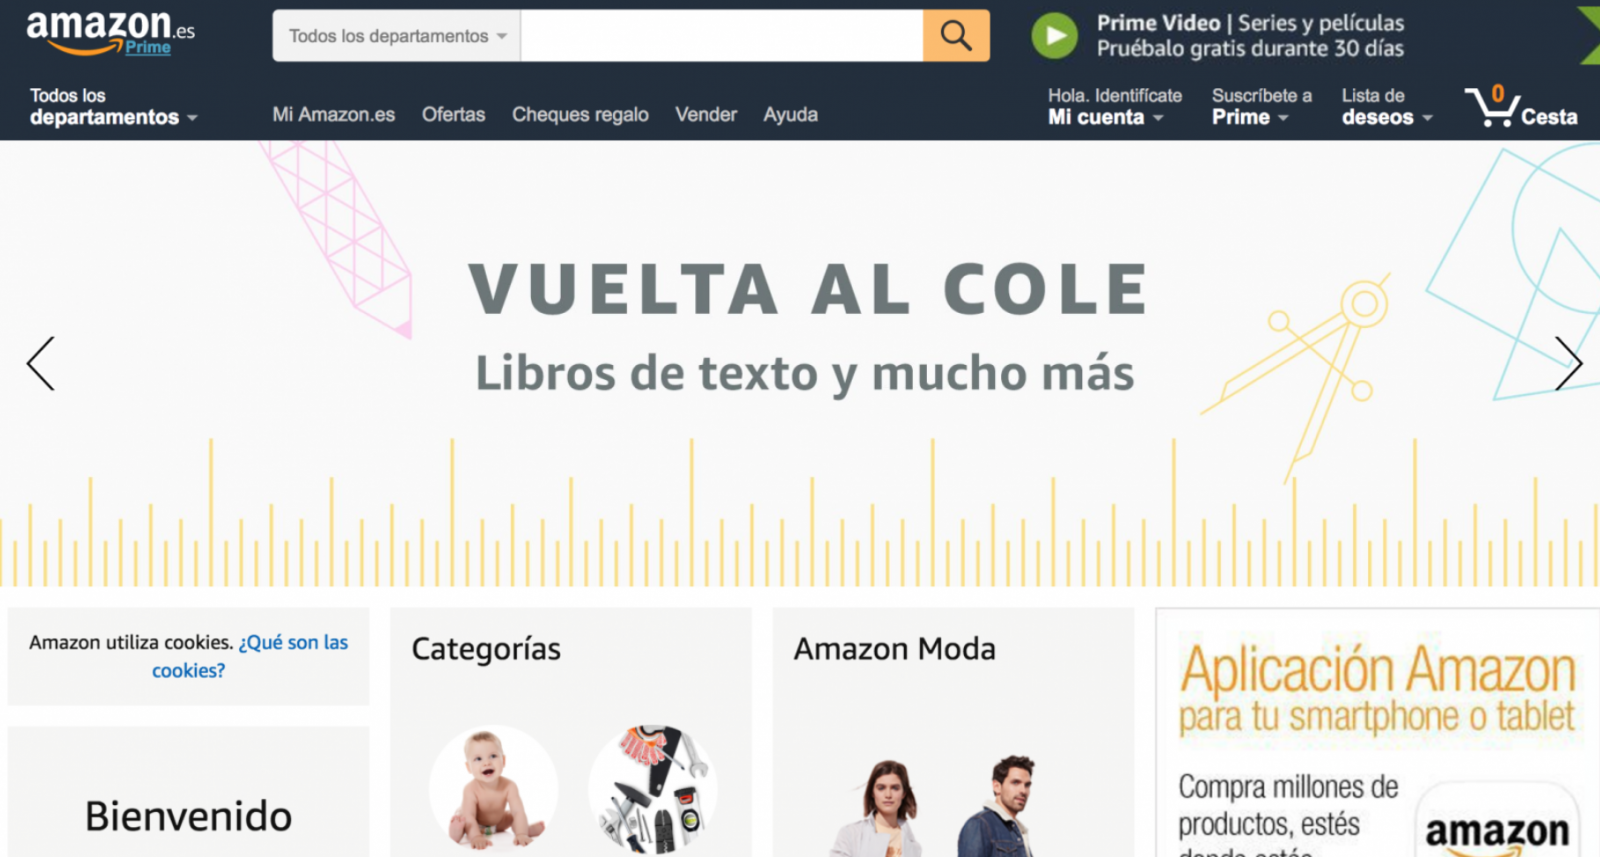 Online shops that sell the most in Spain | wildwildweb es